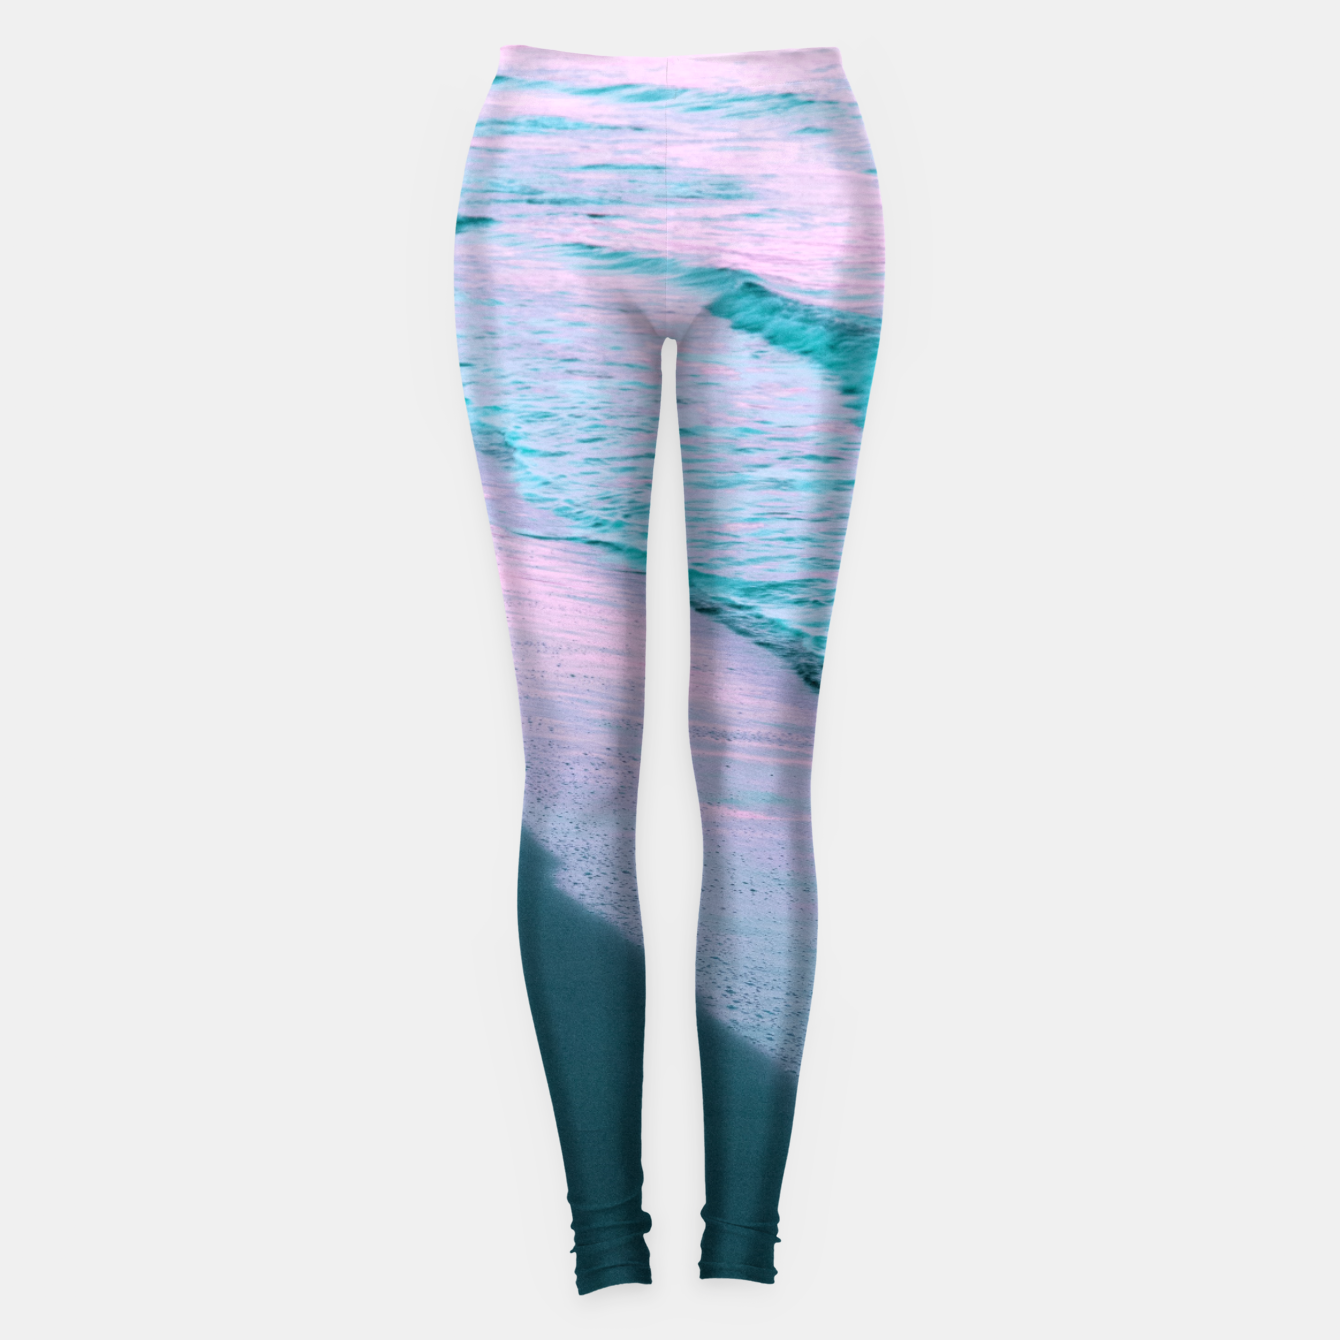 Image de Sunrise Beauty #1 #wall #decor #art Leggings - Live Heroes